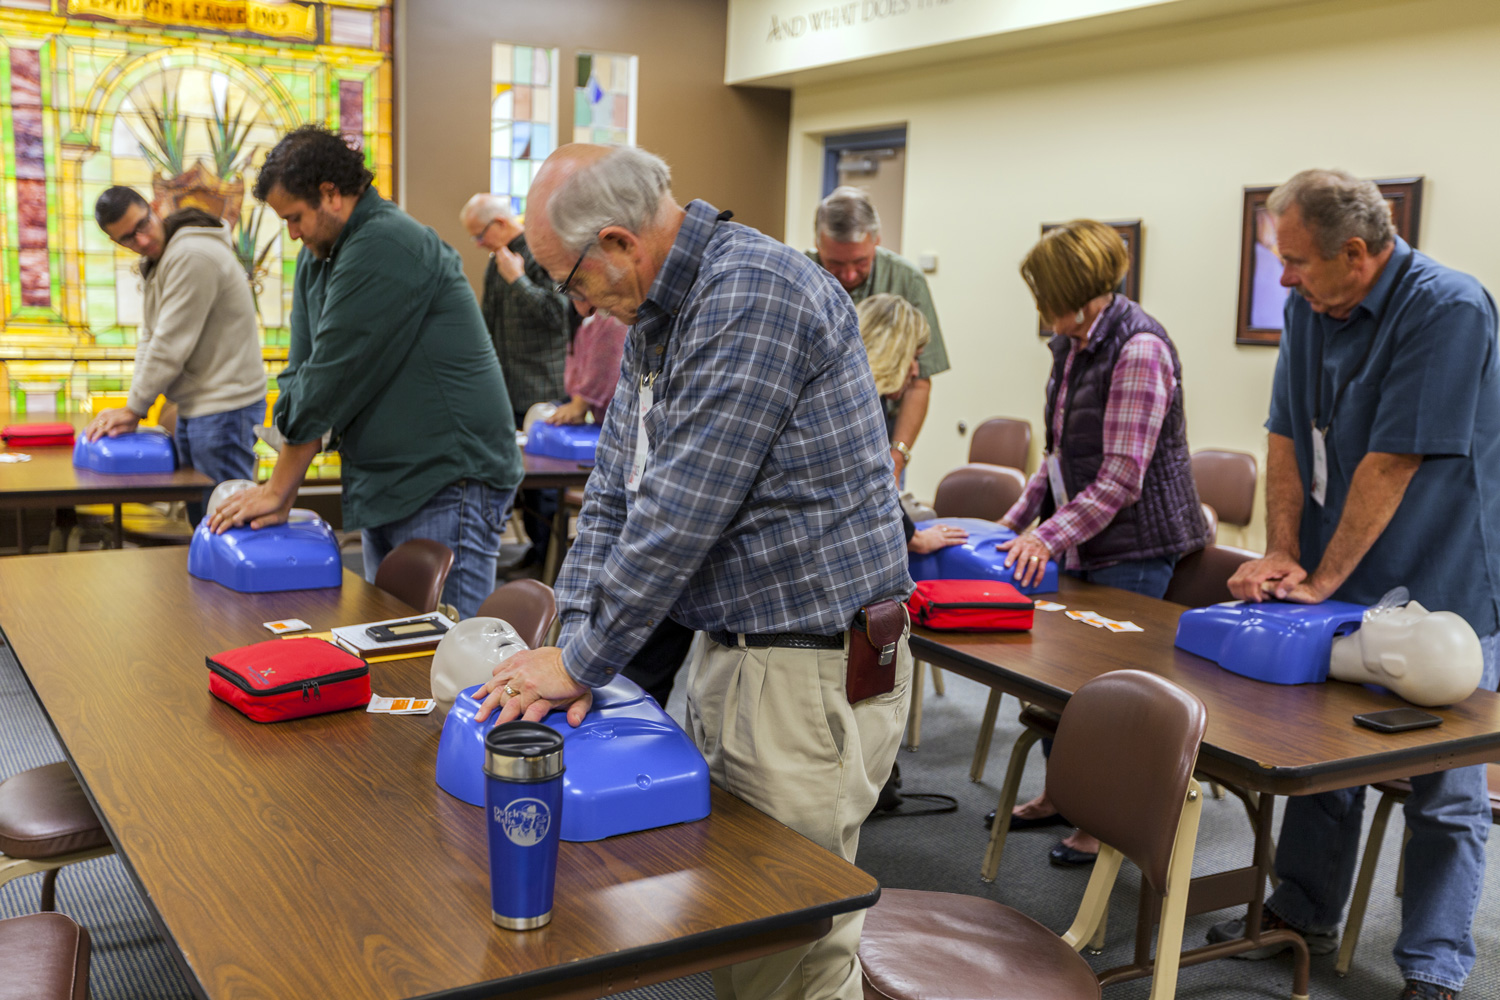 CPR classes are important training for those who wish to keep others safe.